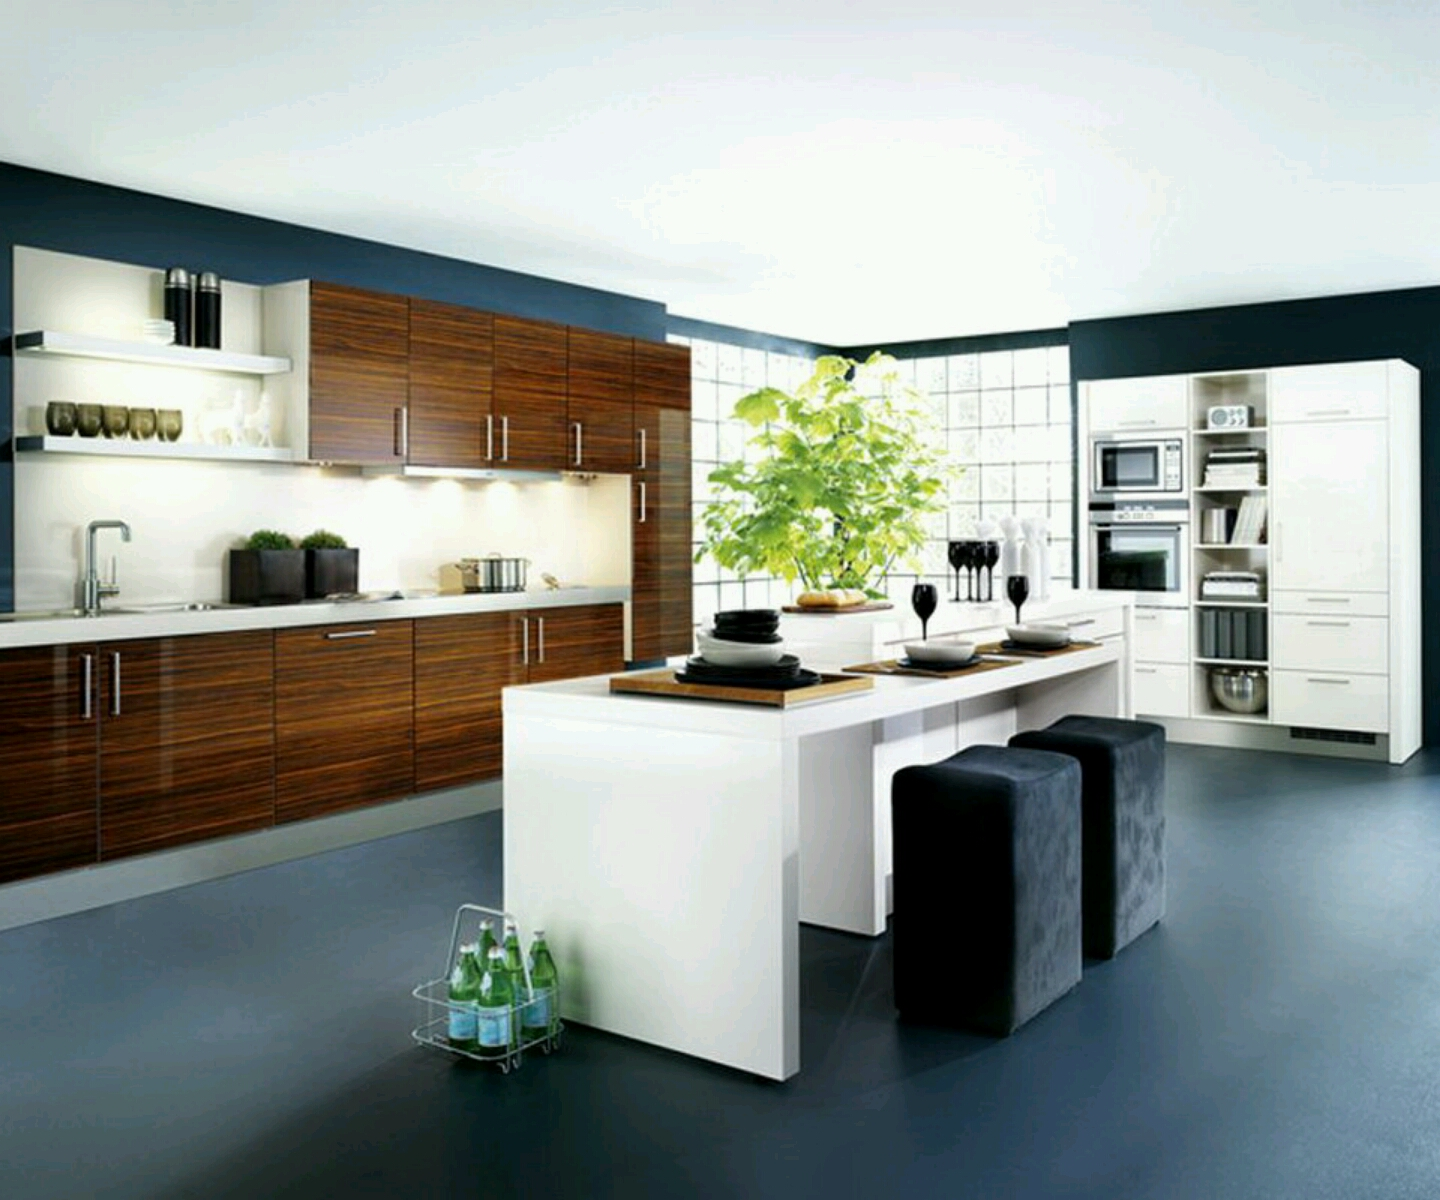 New home designs latest kitchen cabinets designs modern for New home kitchen design ideas